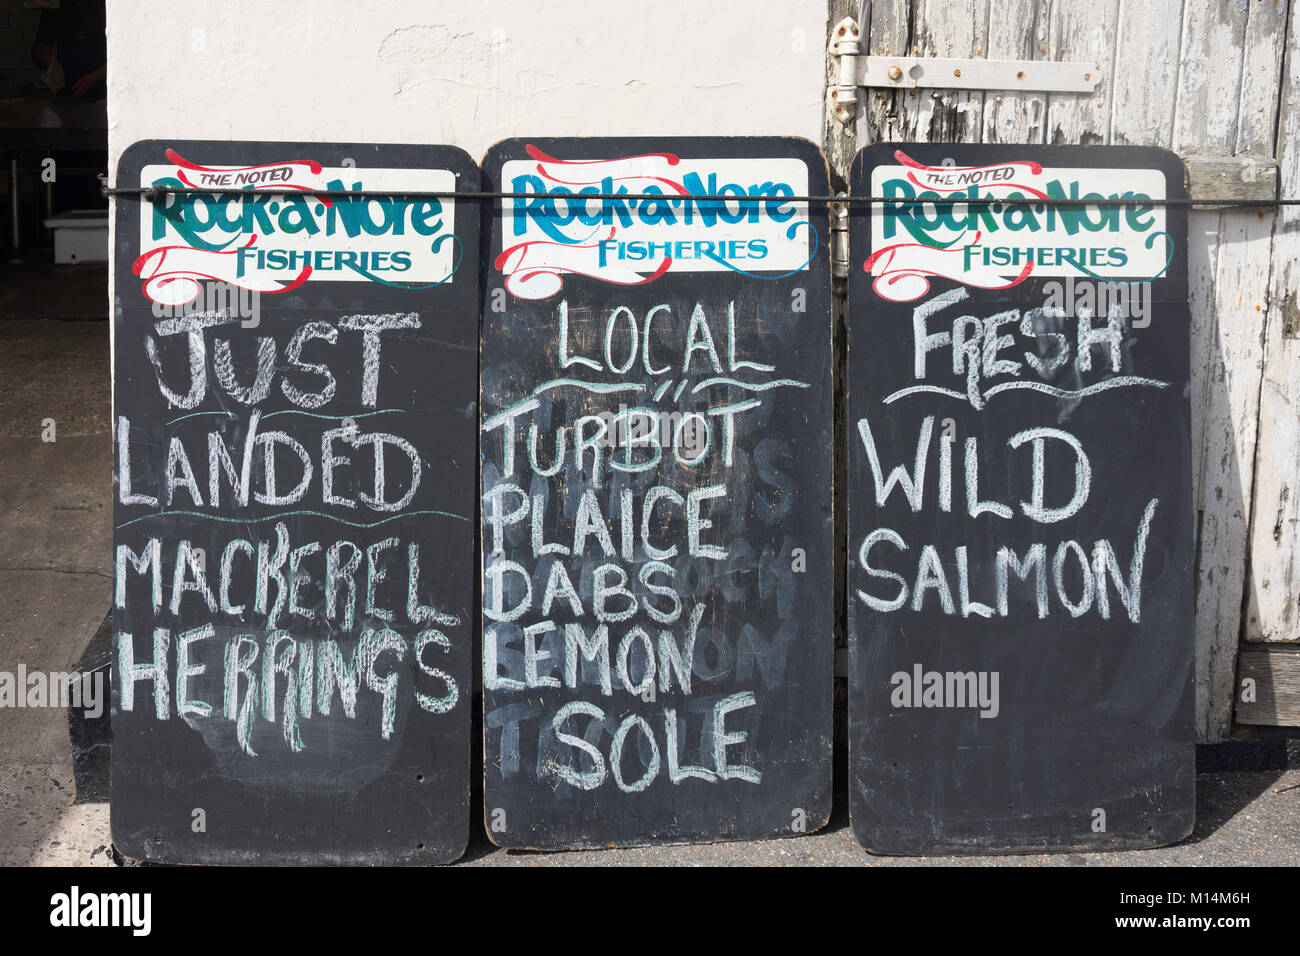 Rock-a -Nore Fisheries fish availabity boards, Hastings Old Town, Rock-a-Nore Road, Hastings, East Sussex, England, - Stock Image